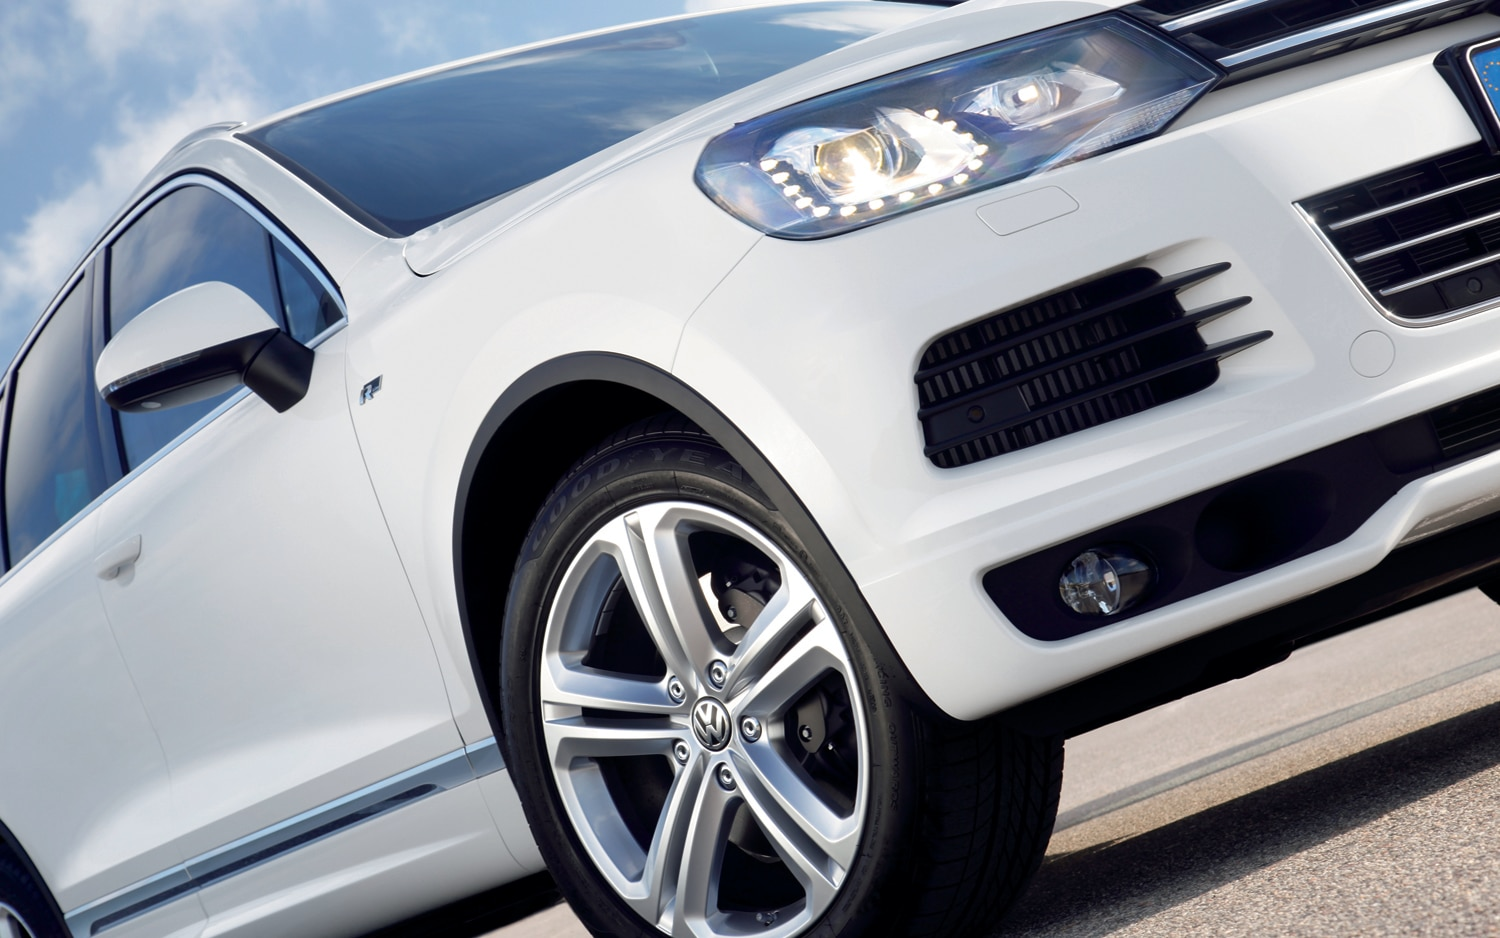 2014 Volkswagen Touareg X Special Edition Priced at $57,080